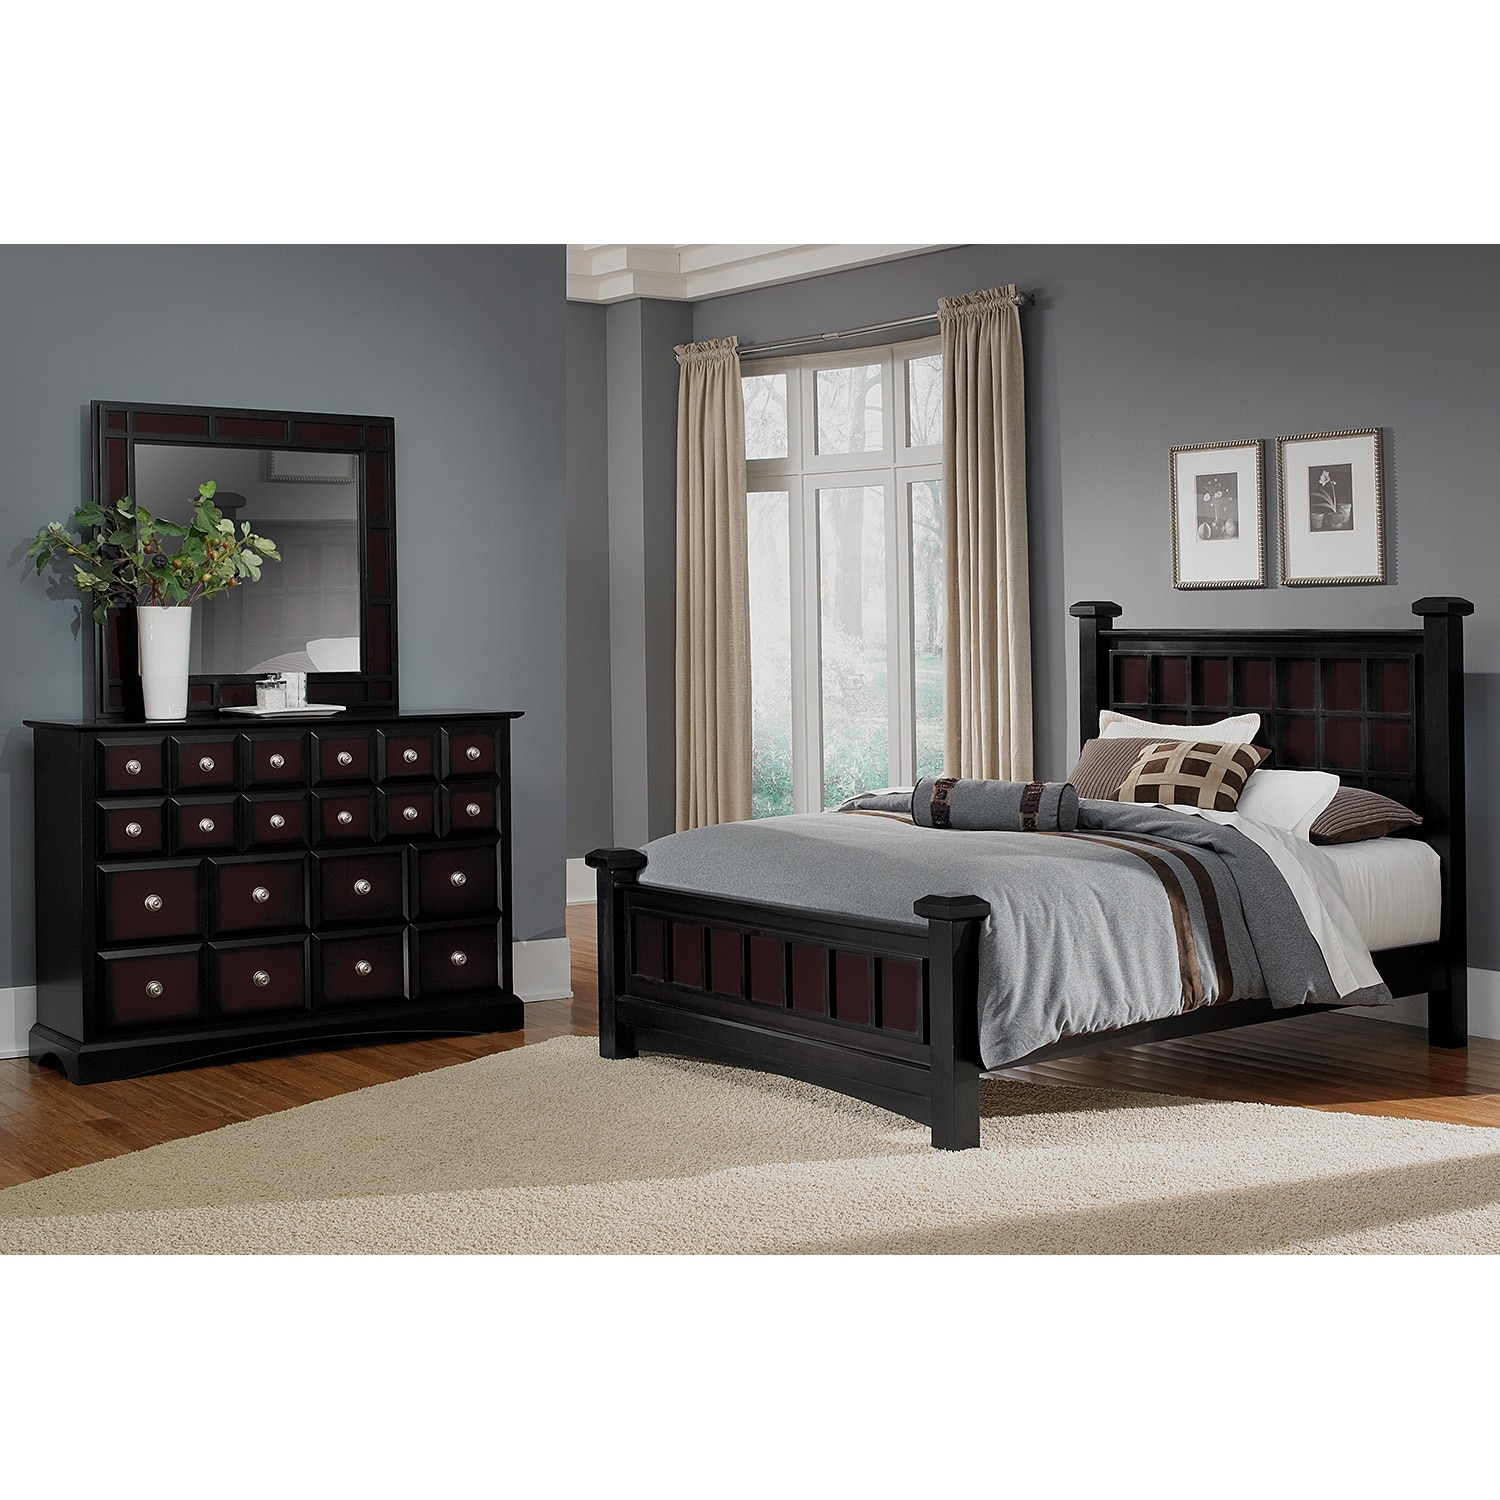 Bedroom Furniture - Winchester 5-Piece King Bedroom Set - Black and Burnished Merlot